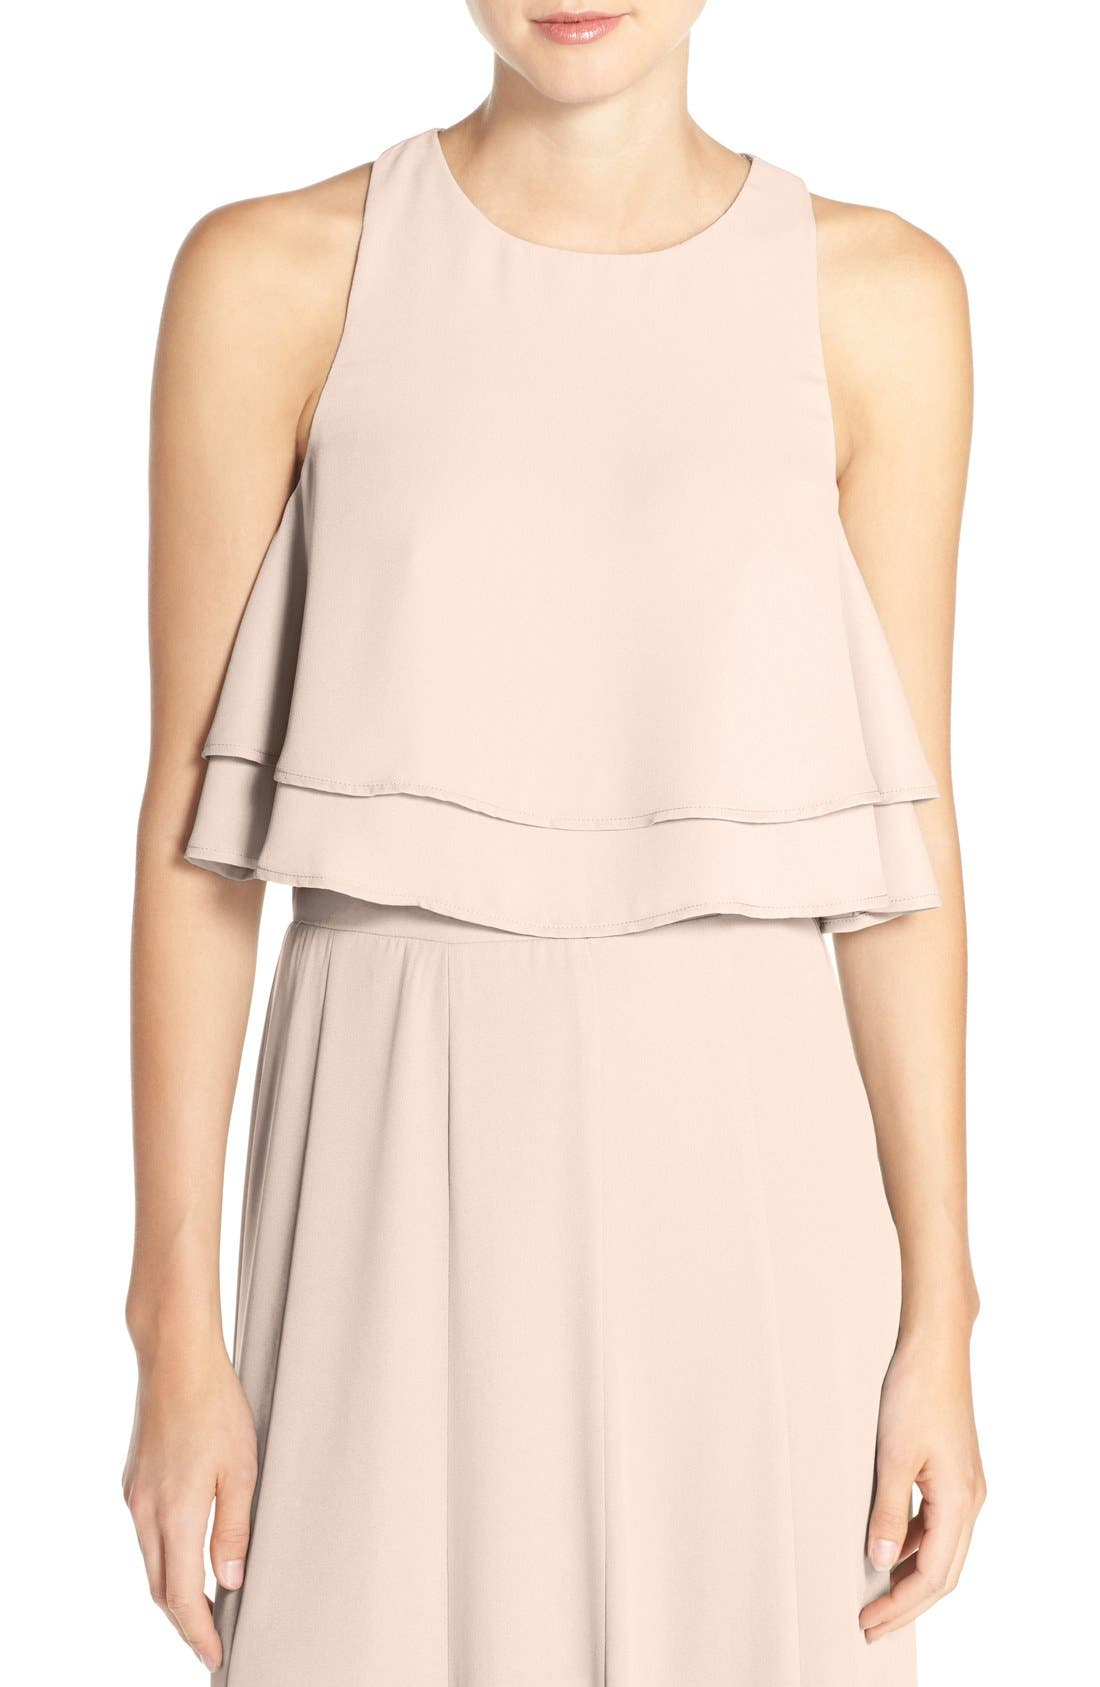 'King' Tiered Chiffon Crop Top,                         Main,                         color, Show Me The Ring Crisp